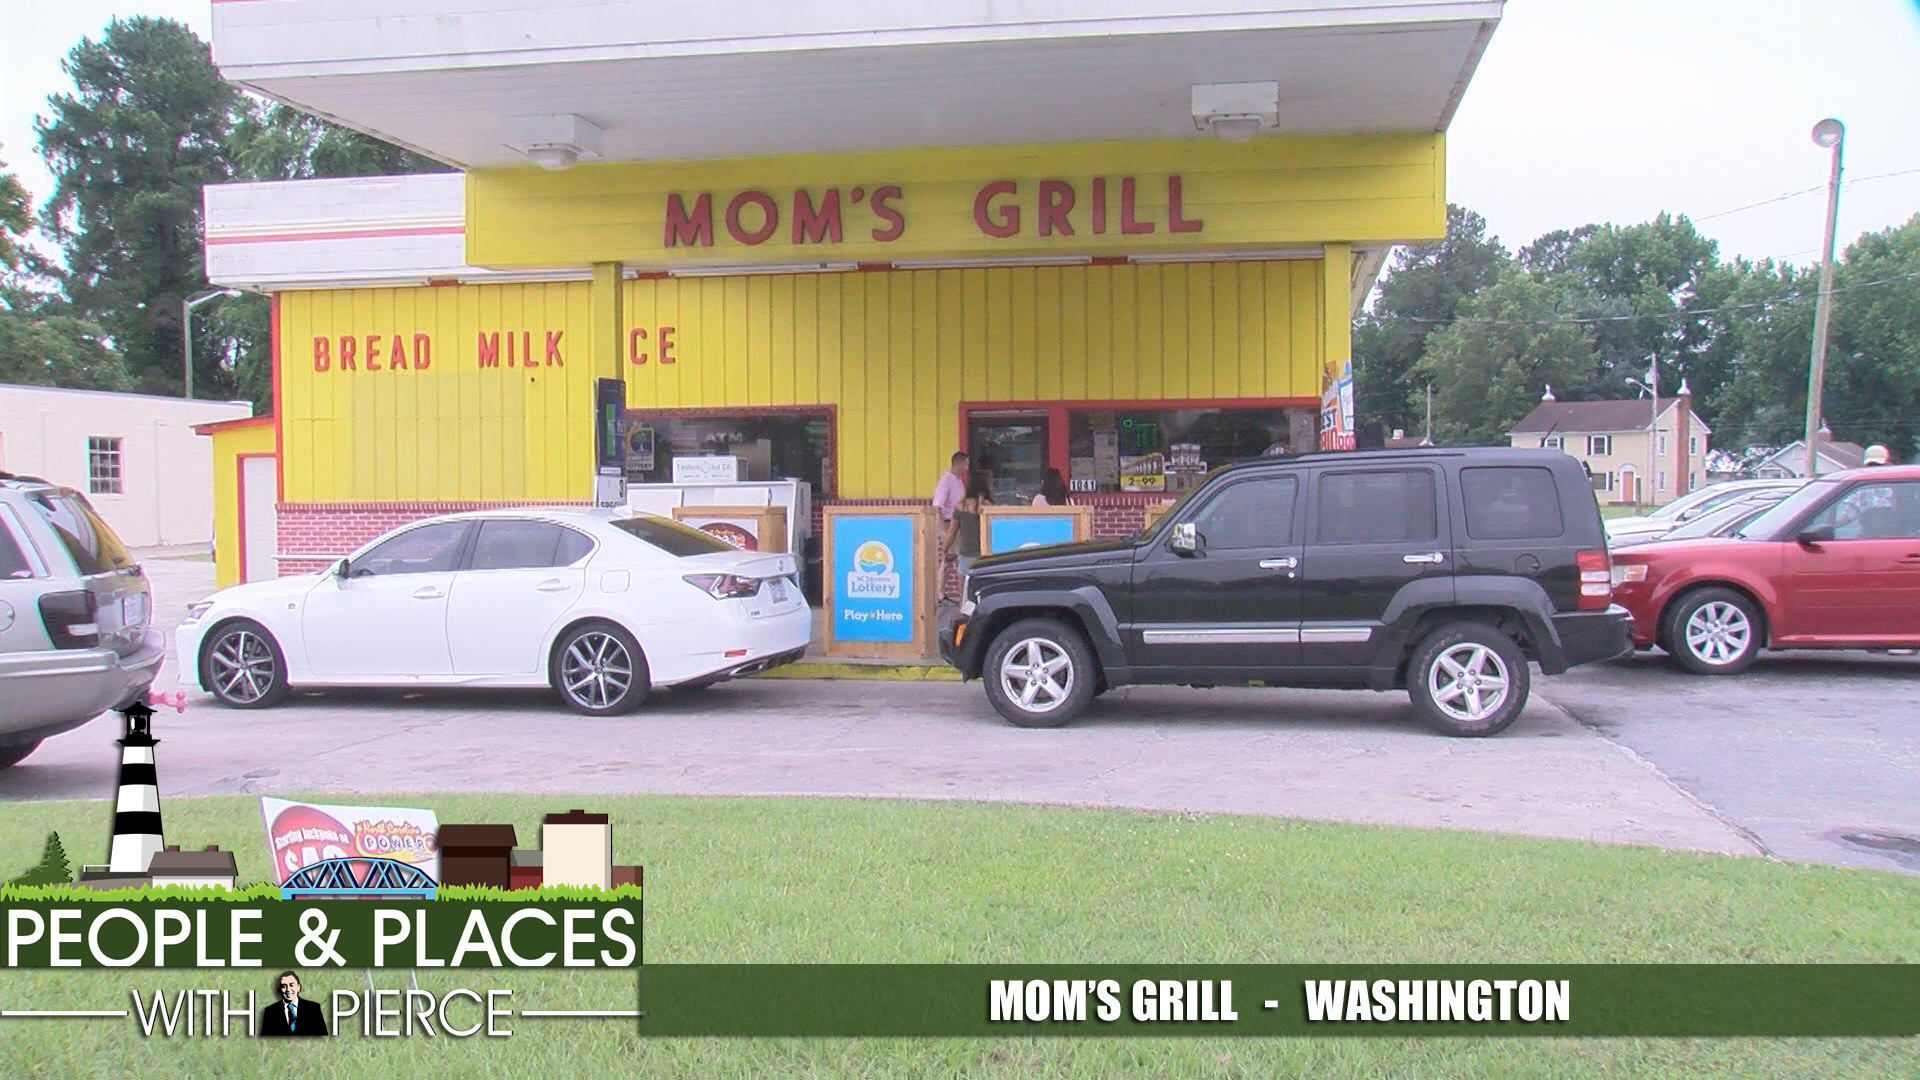 moms grill washington ppp for web_417507